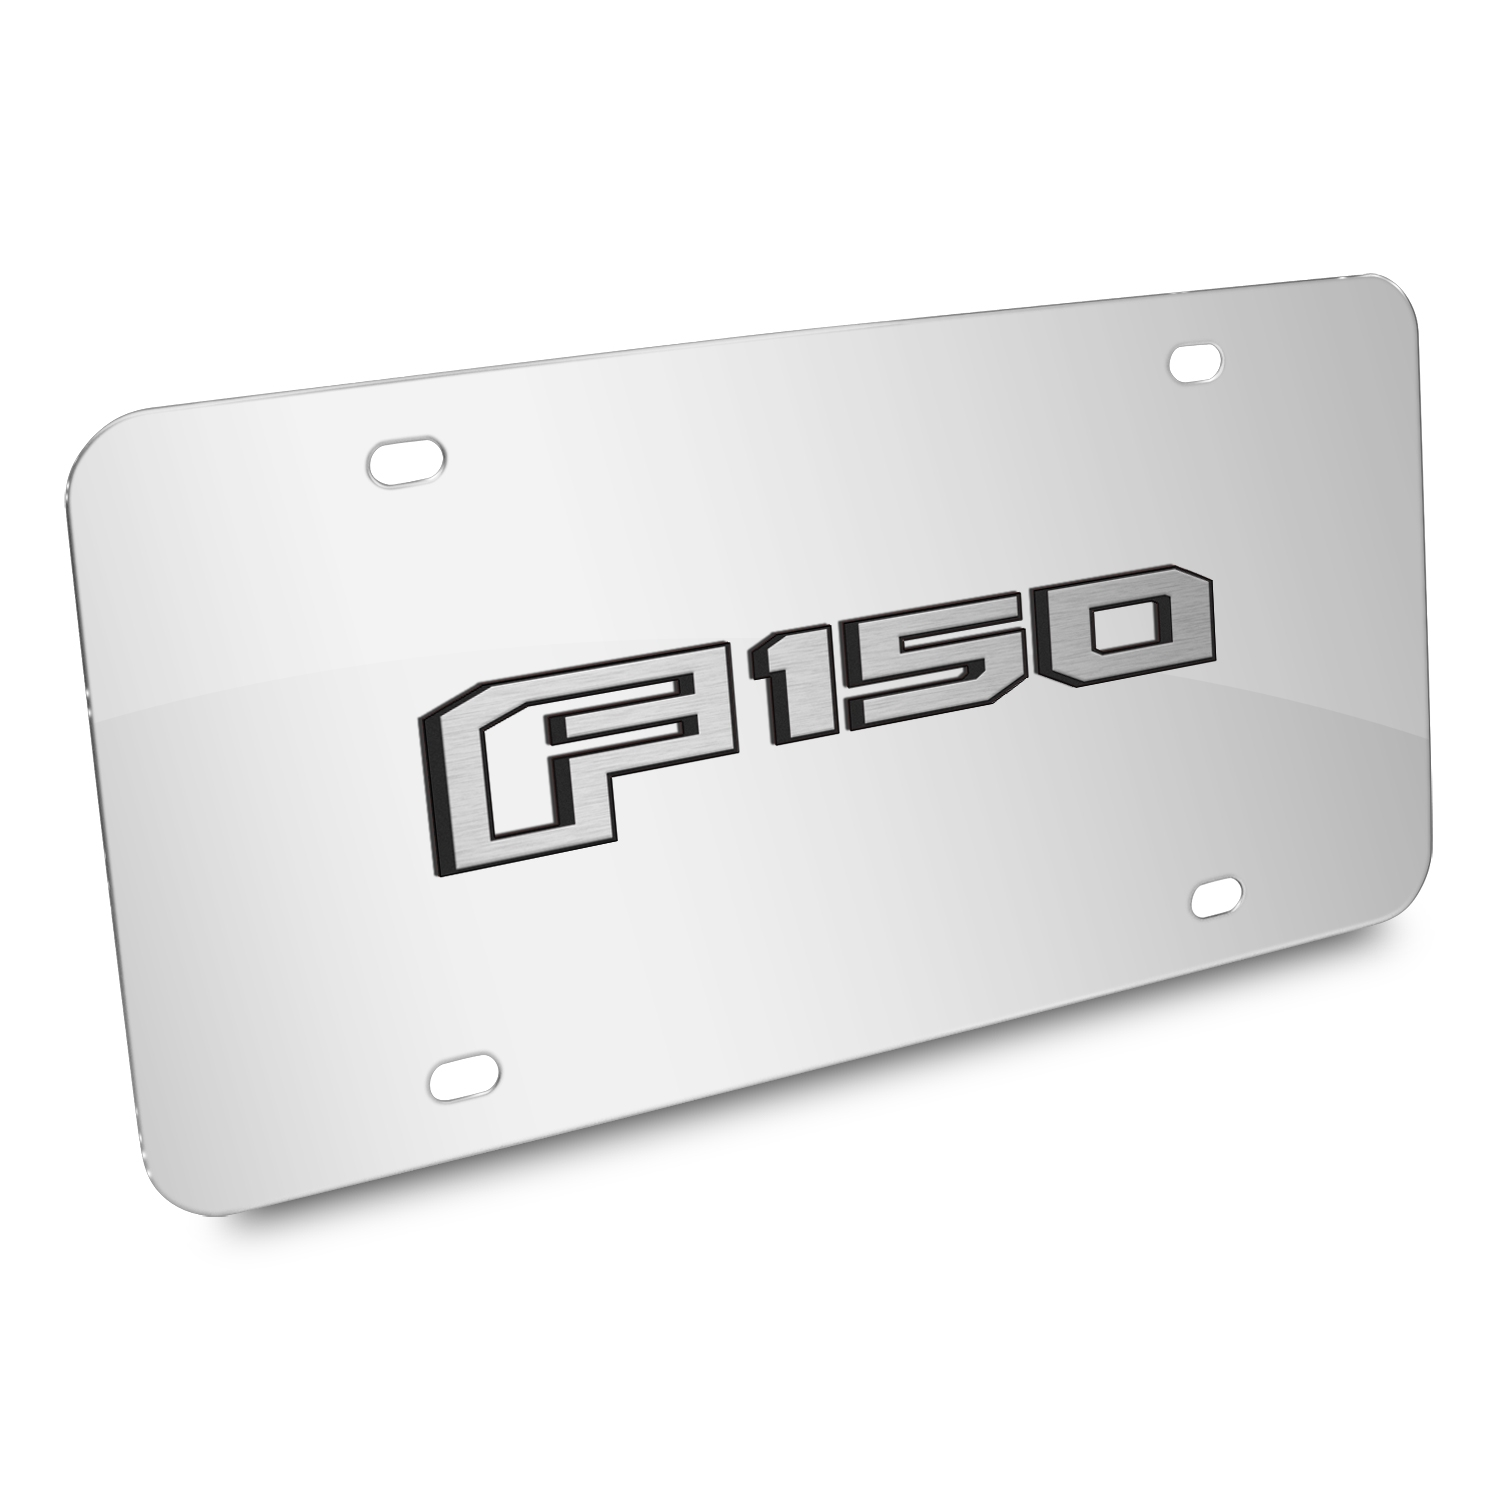 Ford F150 2015 up 3D Mirror Chrome Stainless Steel License Plate